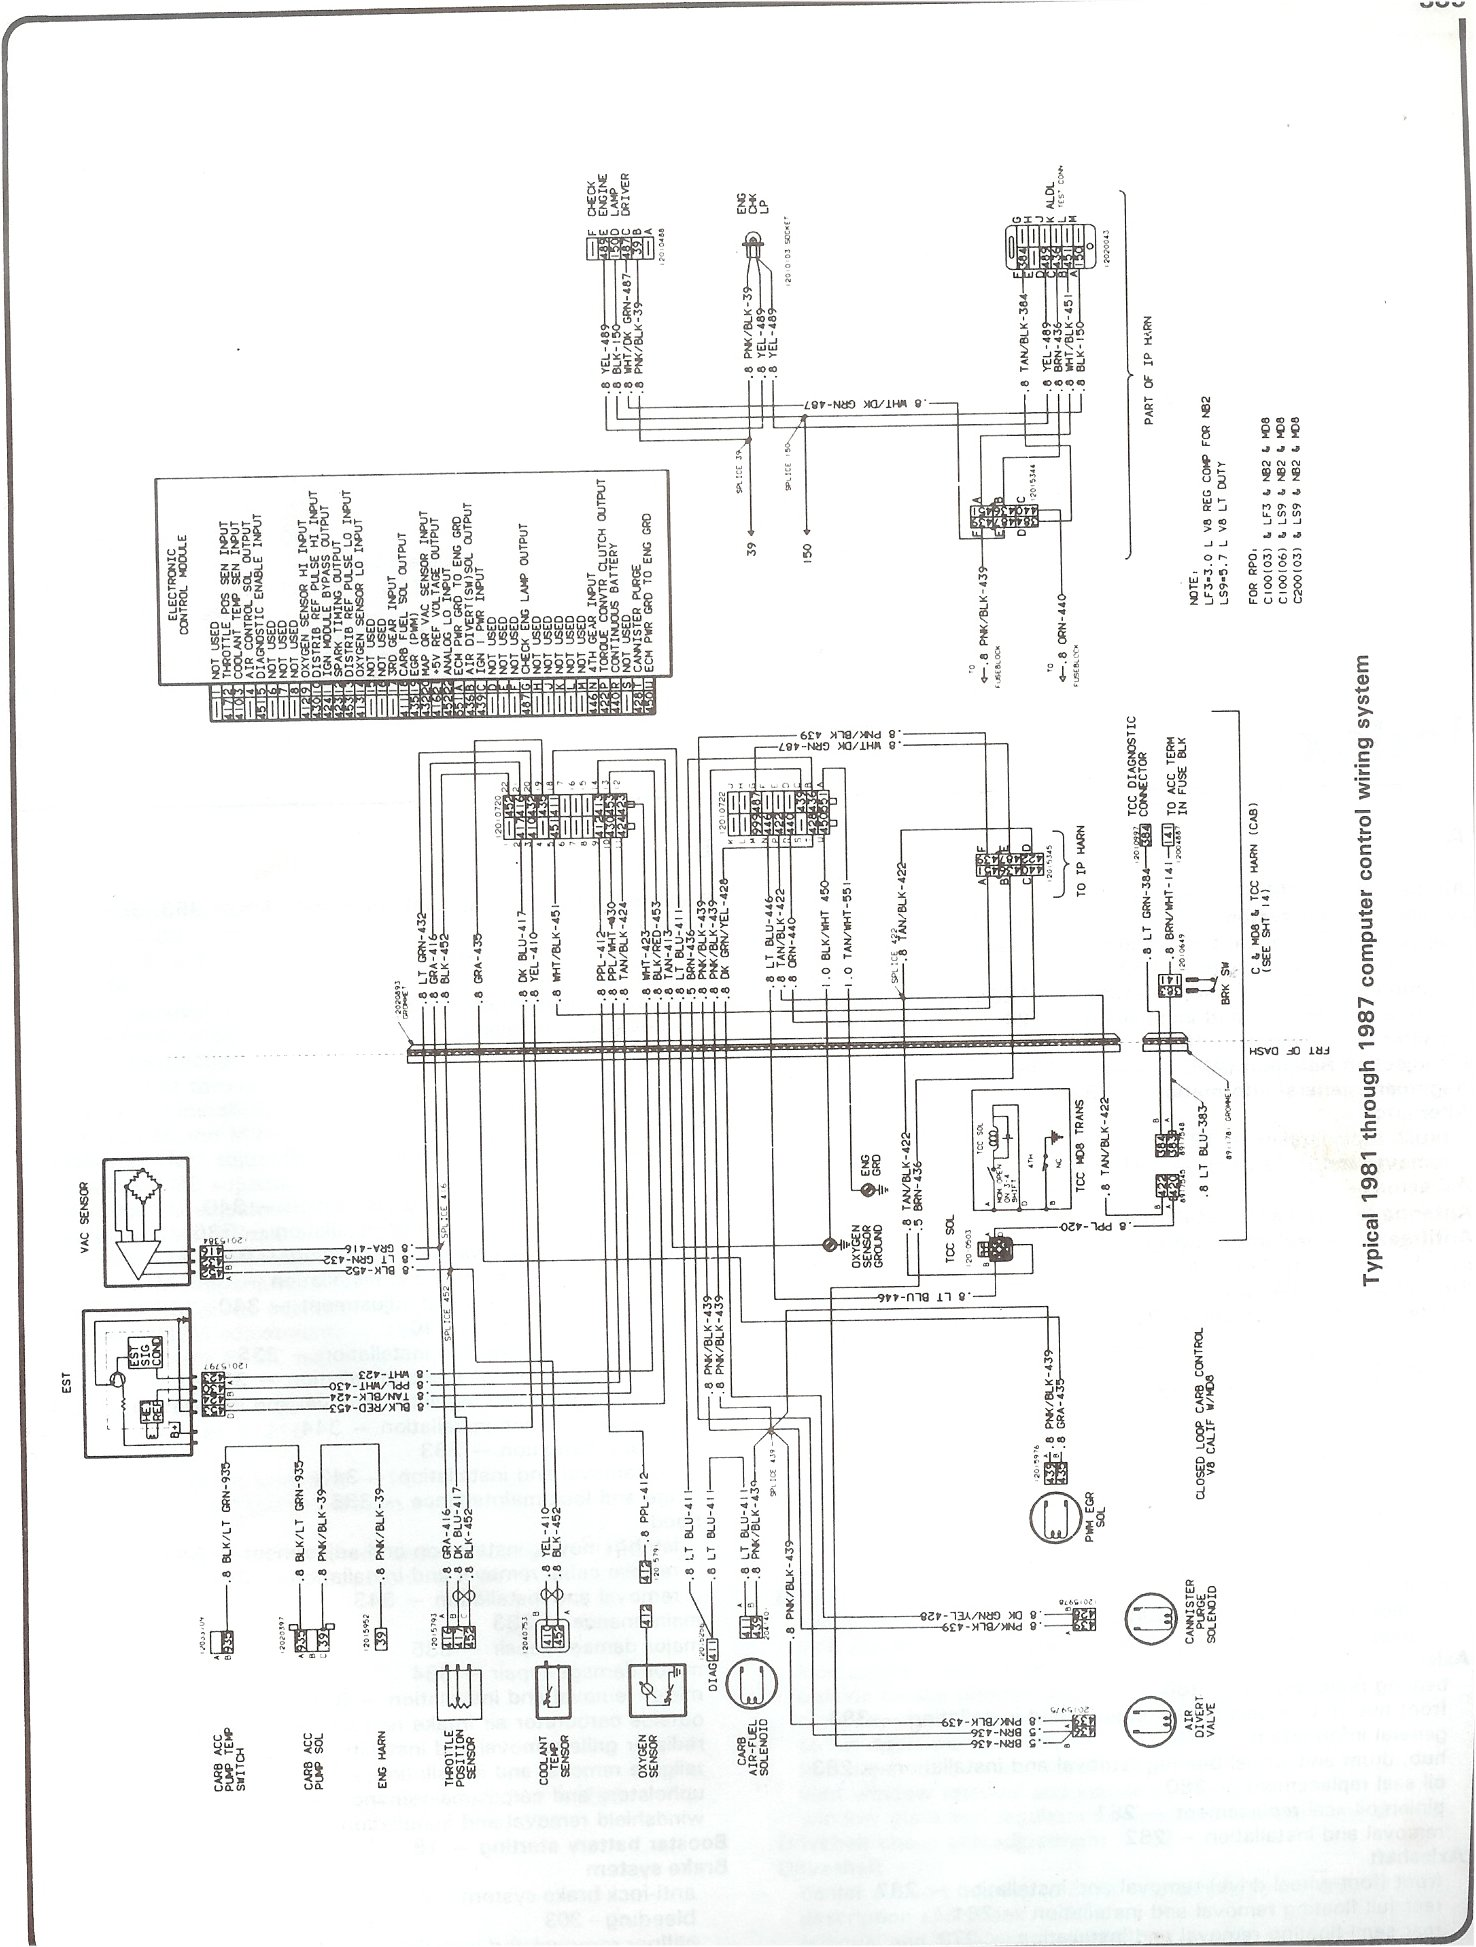 73 gmc wiring harness explore schematic wiring diagram u2022 rh appkhi com 1993 GMC Truck Wiring Diagram 1970 GMC Truck Wiring Diagram